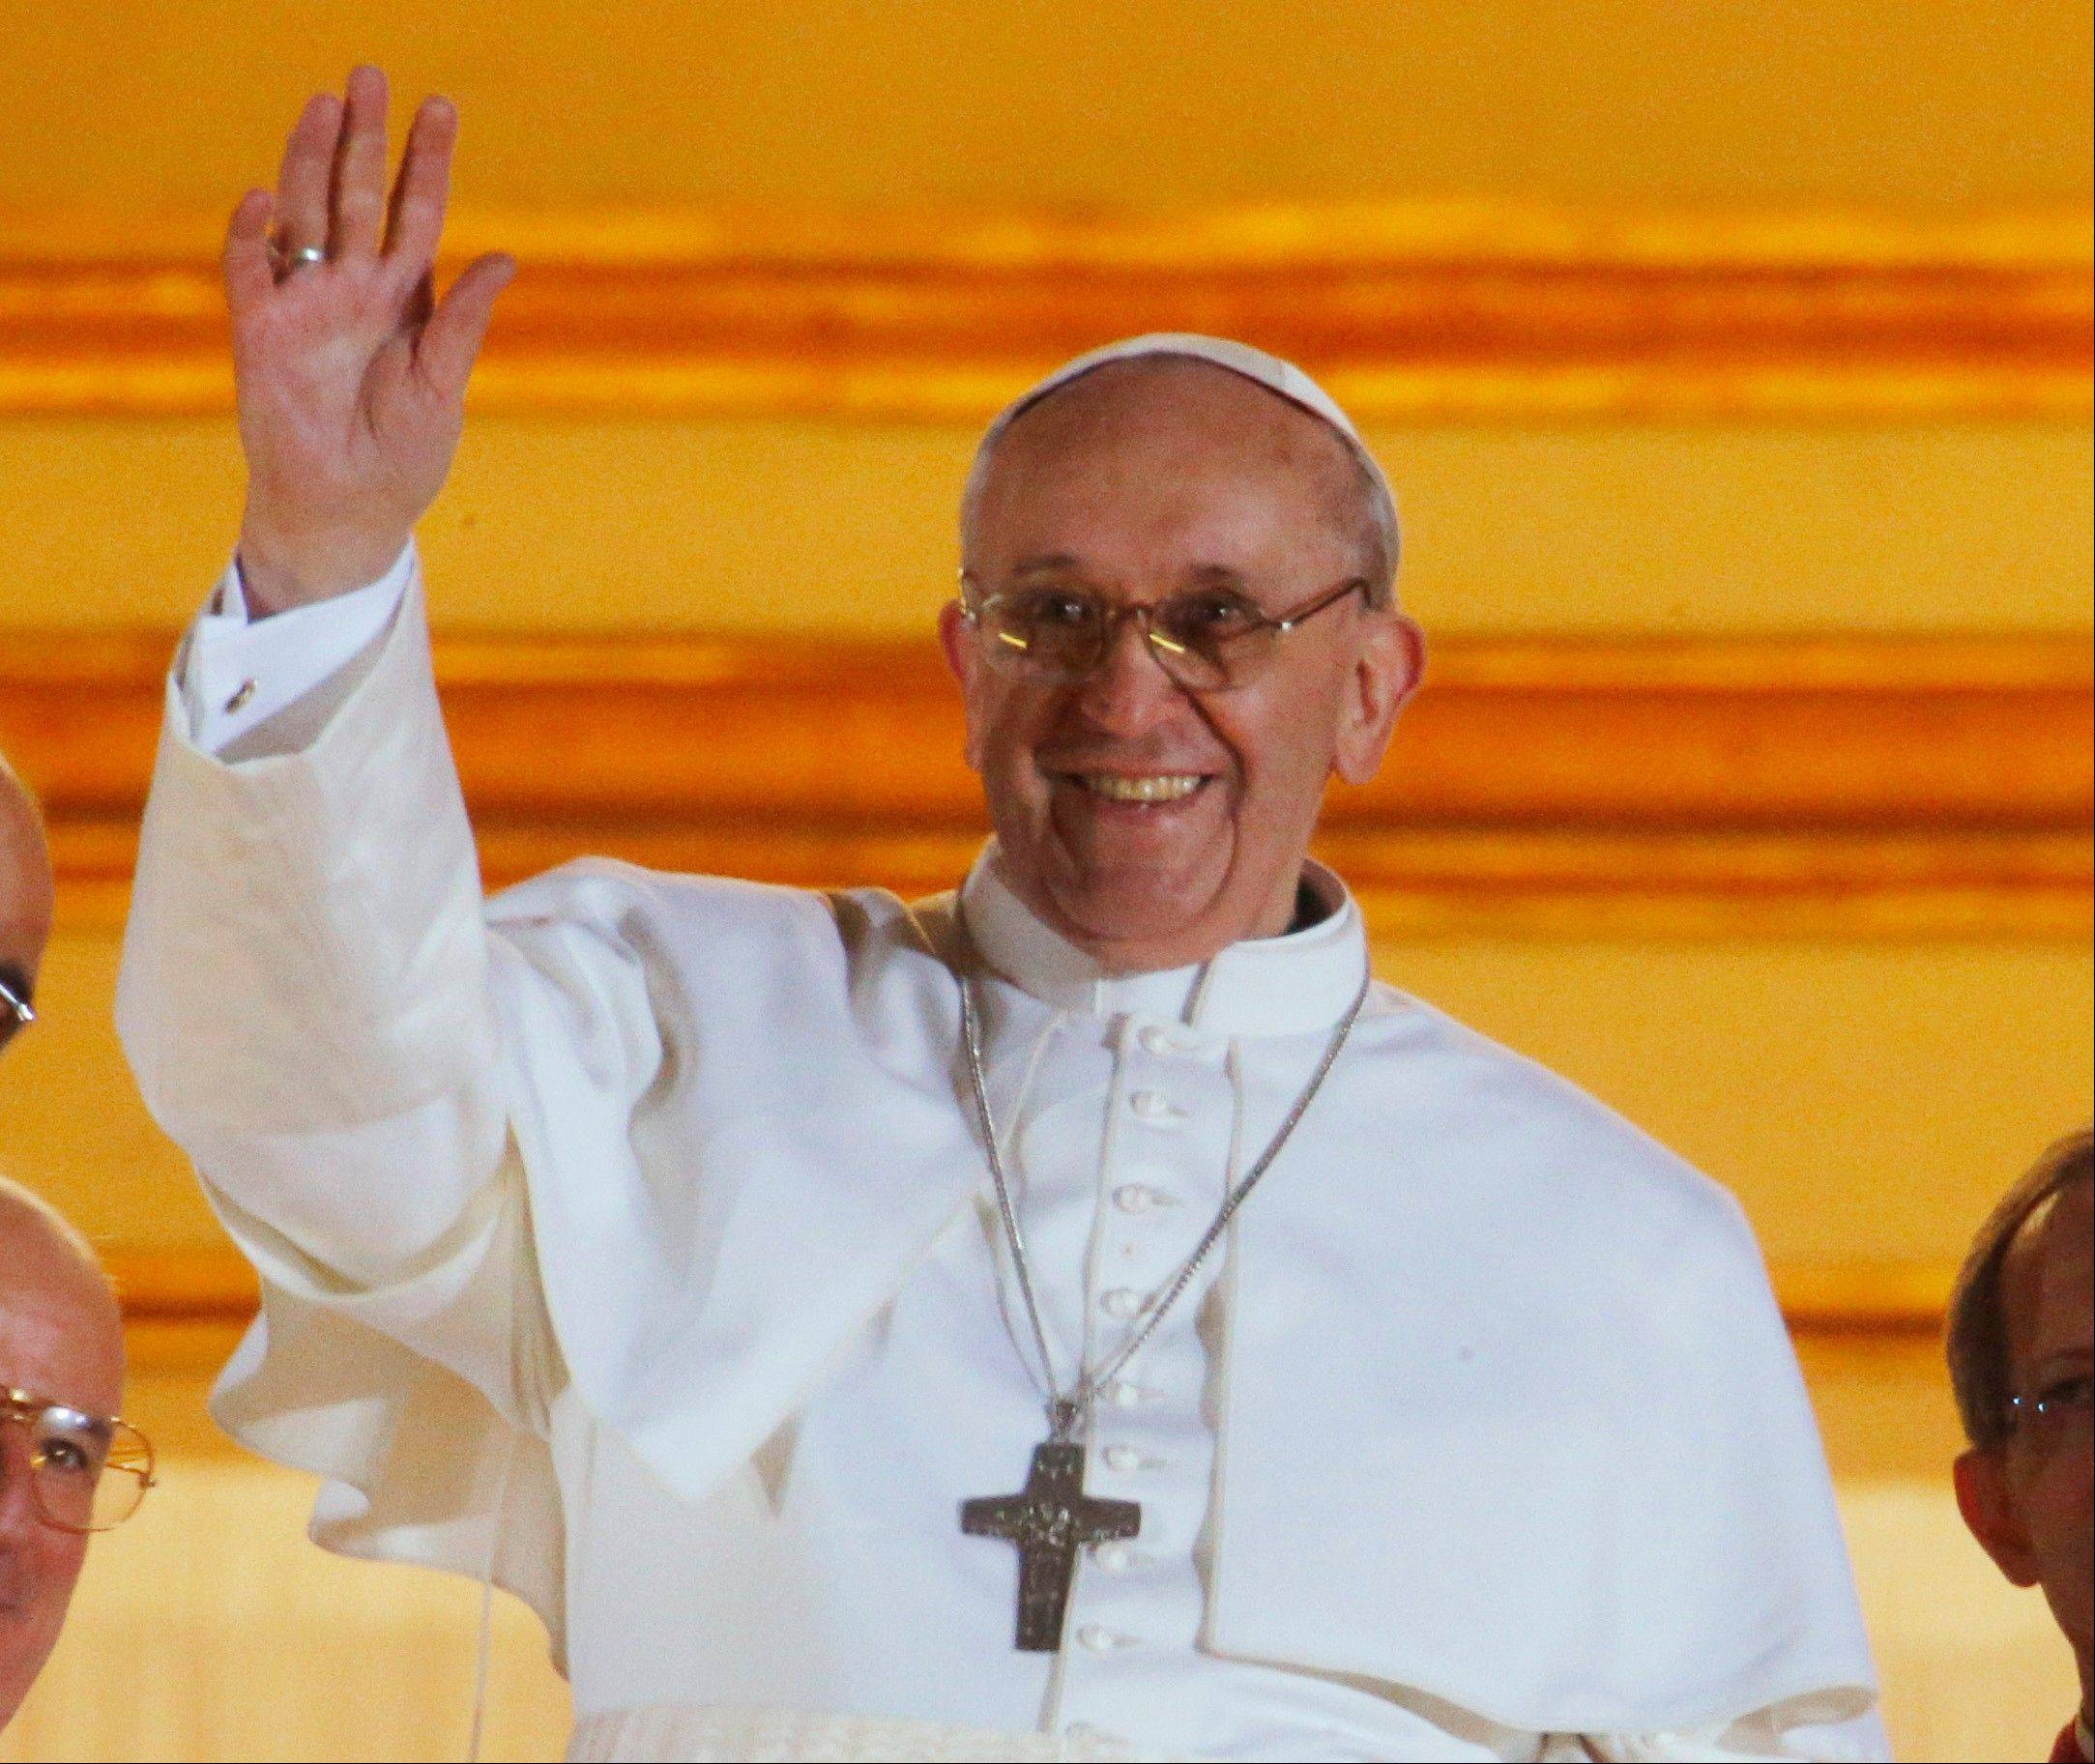 Pope Francis waves to the crowd from the central balcony of St. Peter's Basilica at the Vatican, Wednesday, March 13, 2013. Cardinal Jorge Bergoglio, who chose the name of Francis is the 266th pontiff of the Roman Catholic Church.